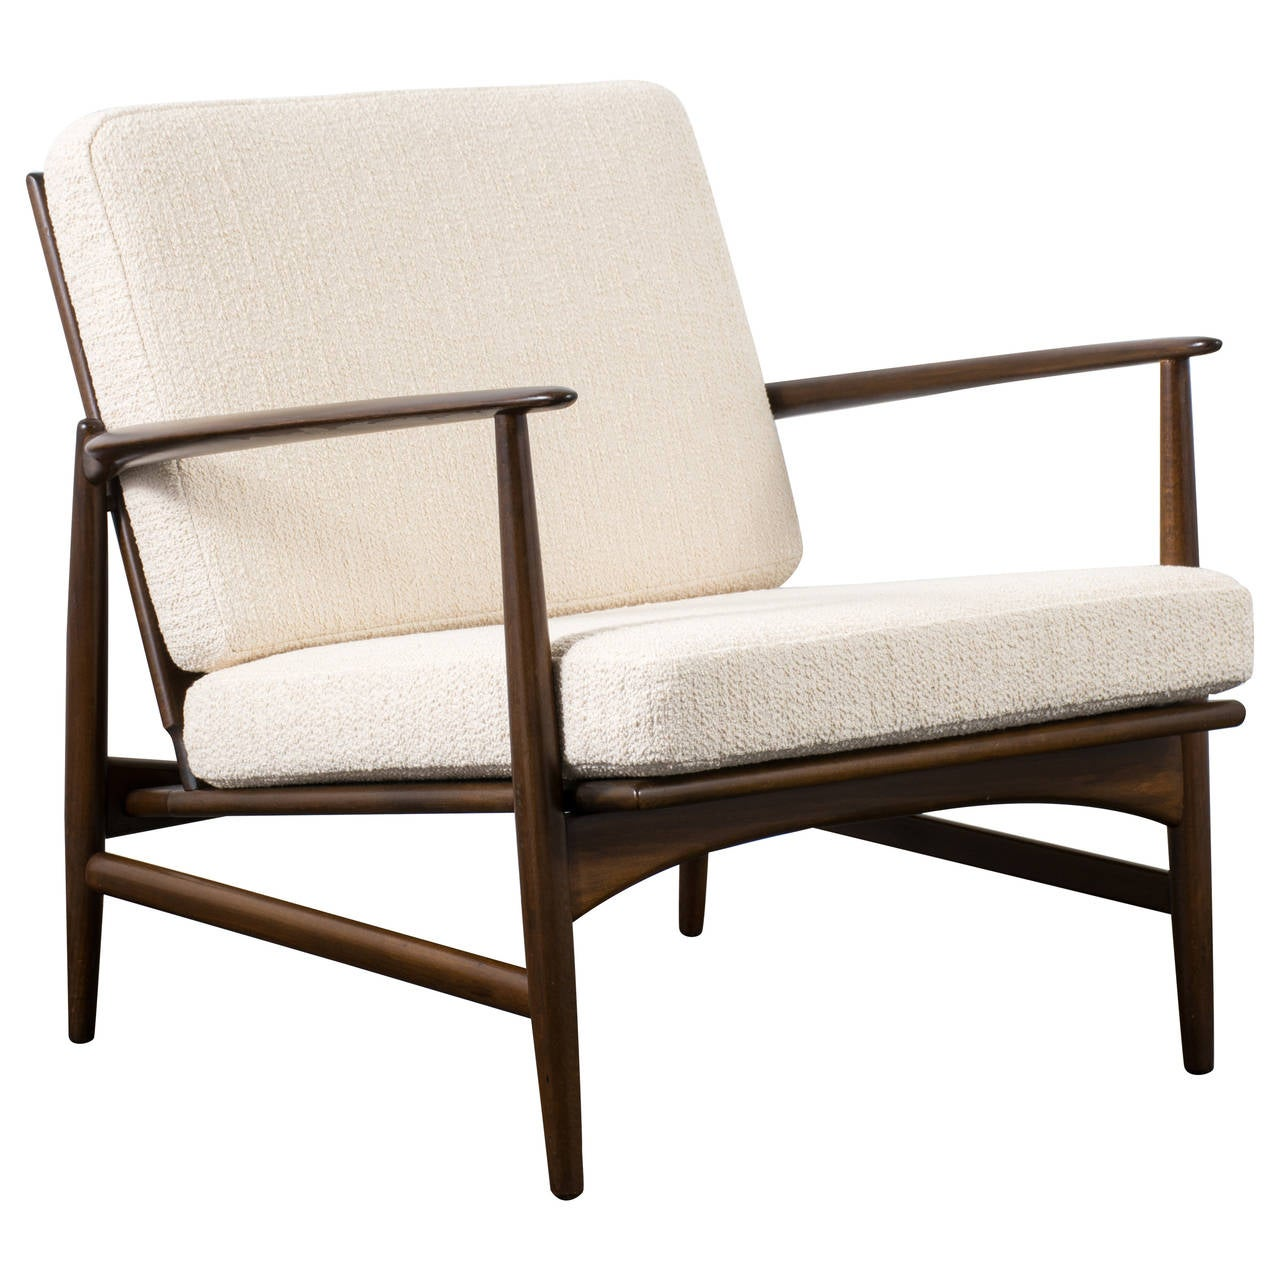 danish modern lounge chair by kofod larsen for selig at. Black Bedroom Furniture Sets. Home Design Ideas